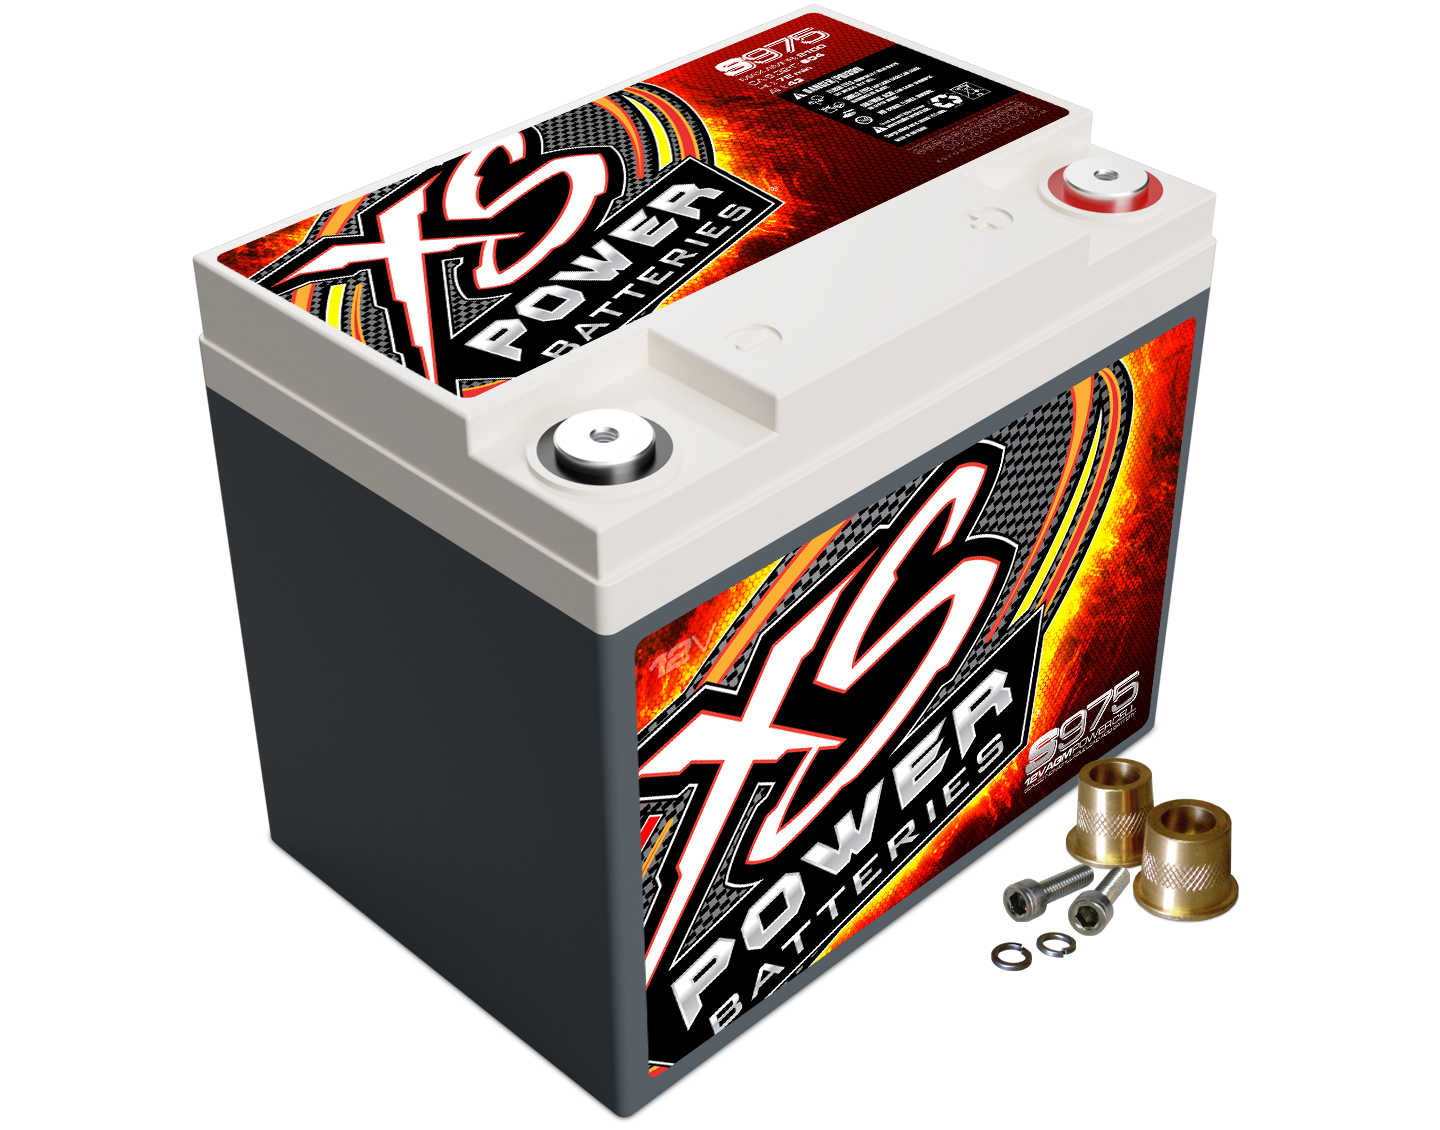 XS Power S975 Battery 12 V AGM 604 Cranking Amps at 32 Degrees For Cars